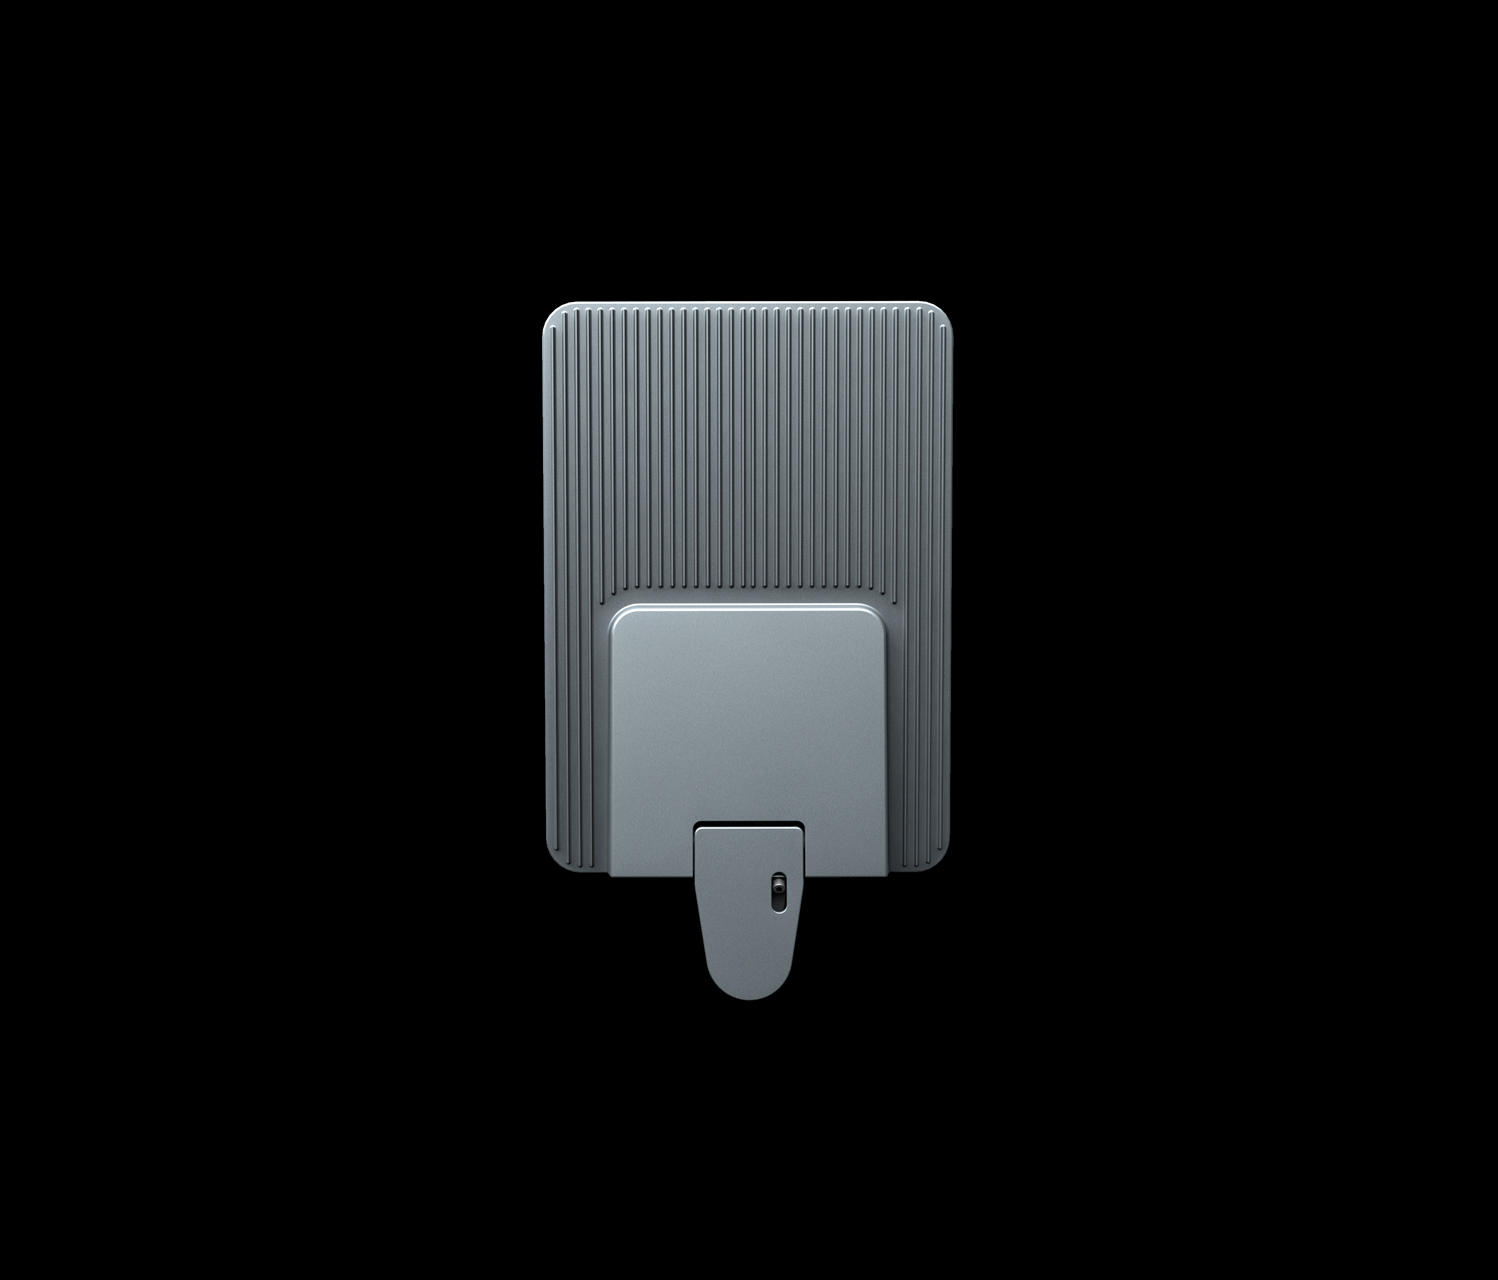 METRO 150 LED STREET LAMP - Street lights from BURRI | Architonic